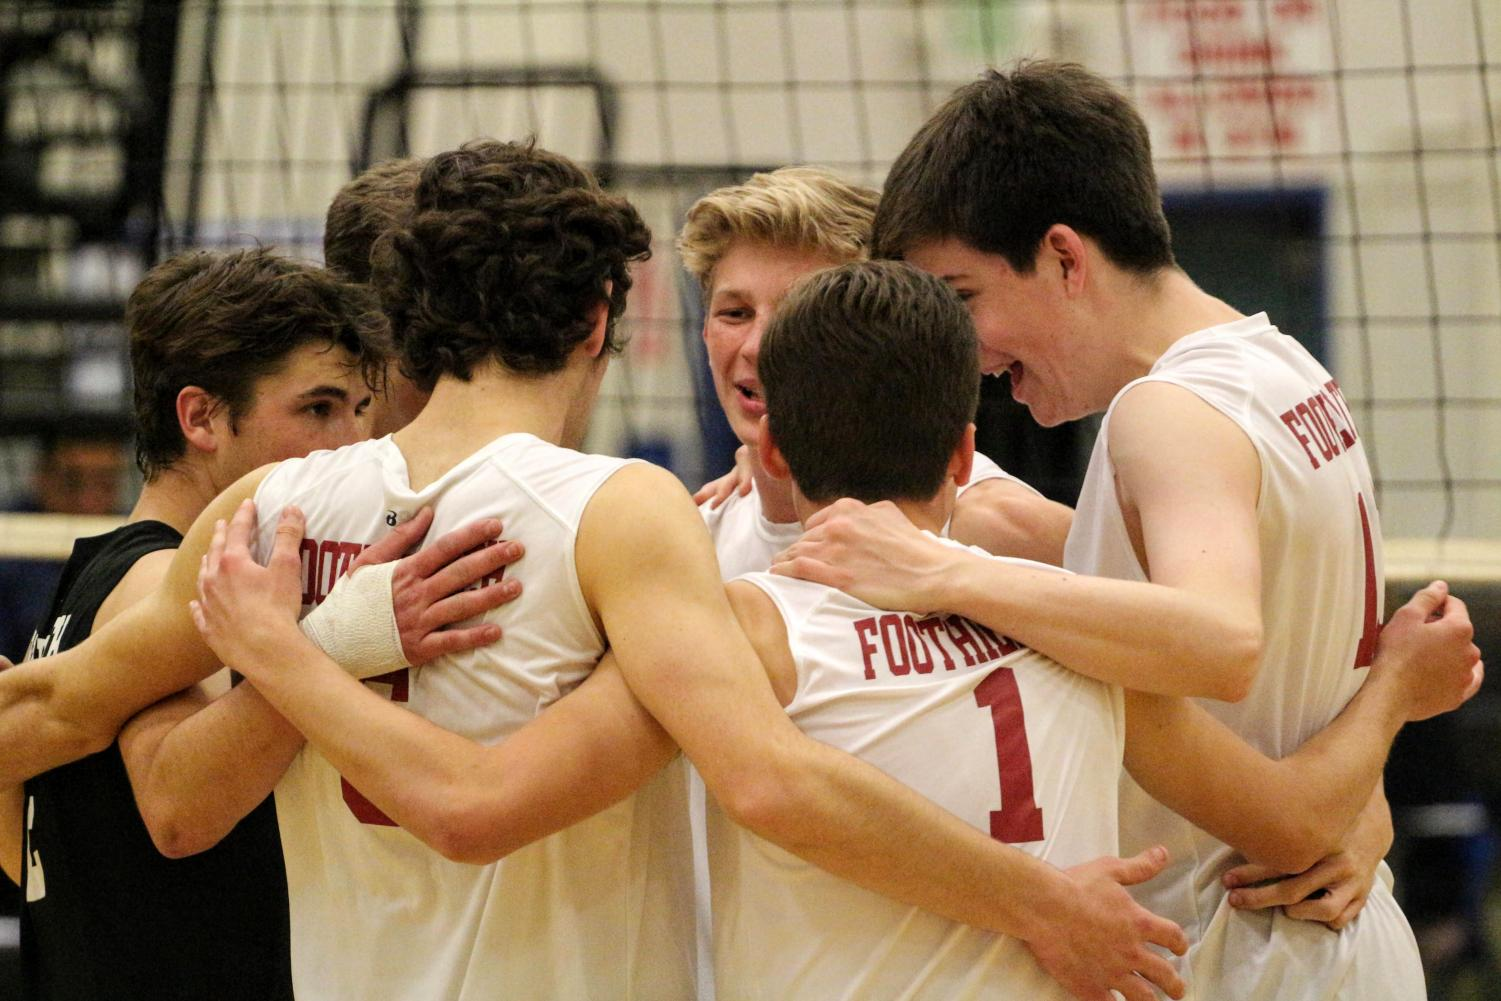 The boys celebrate on the court after scoring a point against Santa Clara.